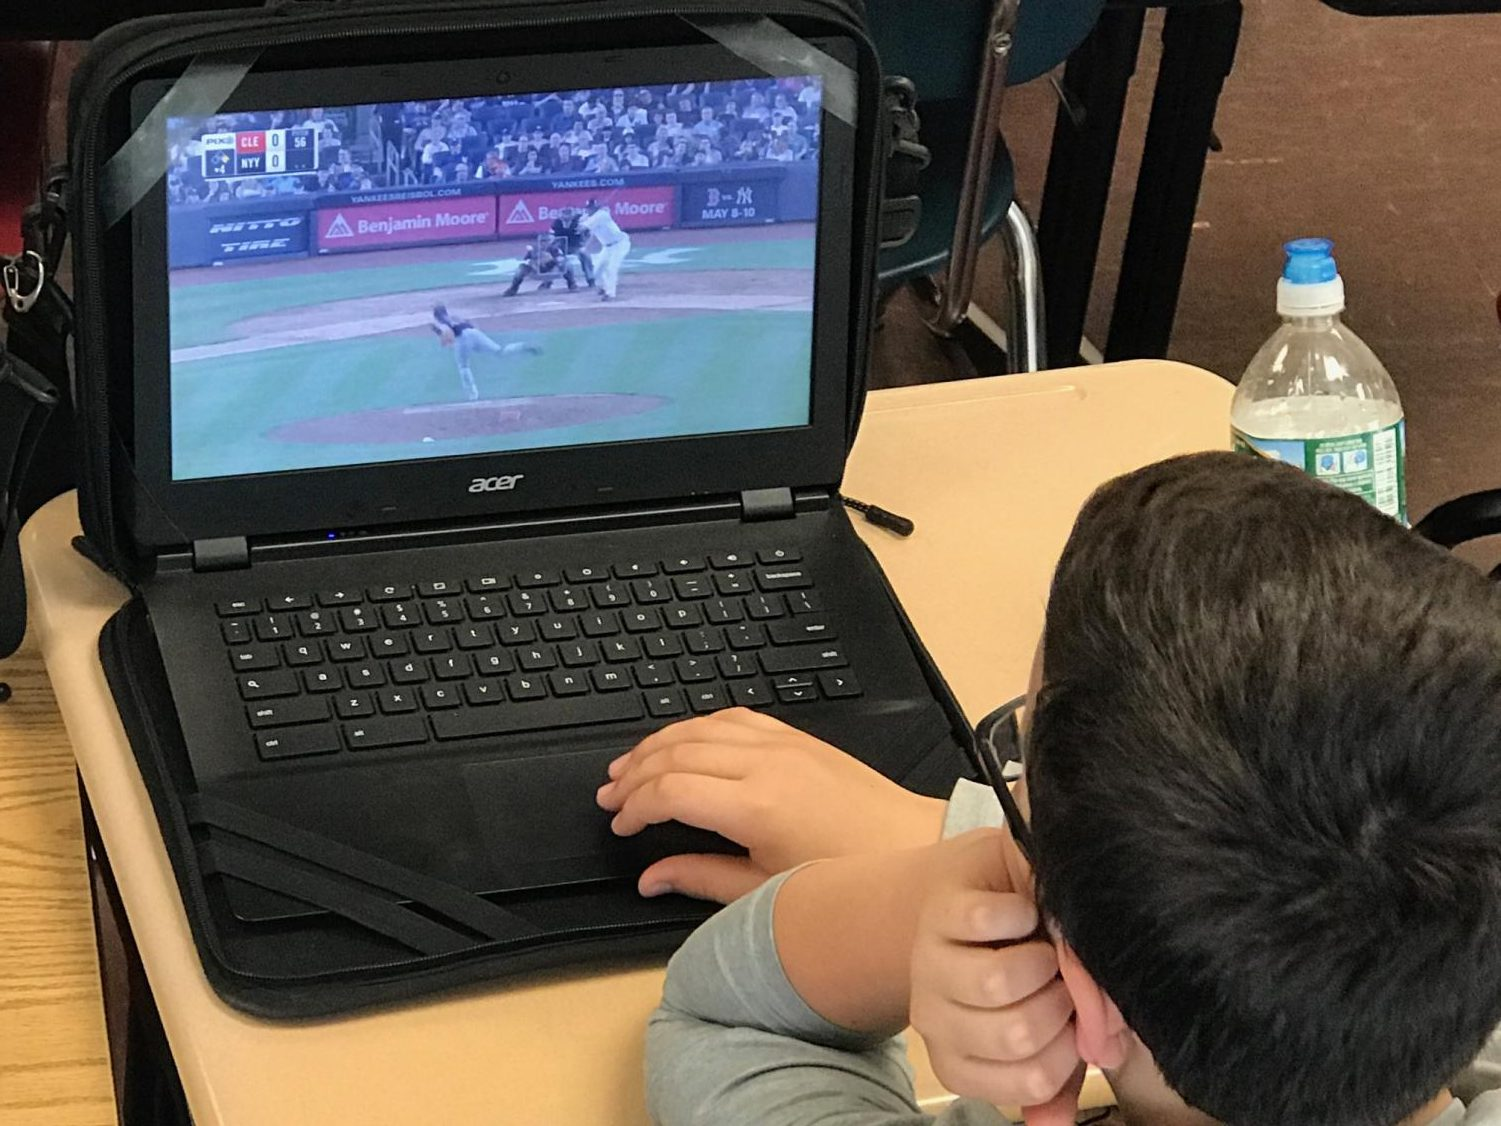 Sixth grade student, Patrick Walsh, watches Yankees highlights on his laptop. The Yankees have hit 79 home runs this season - an impressive start for this early in the regular season.